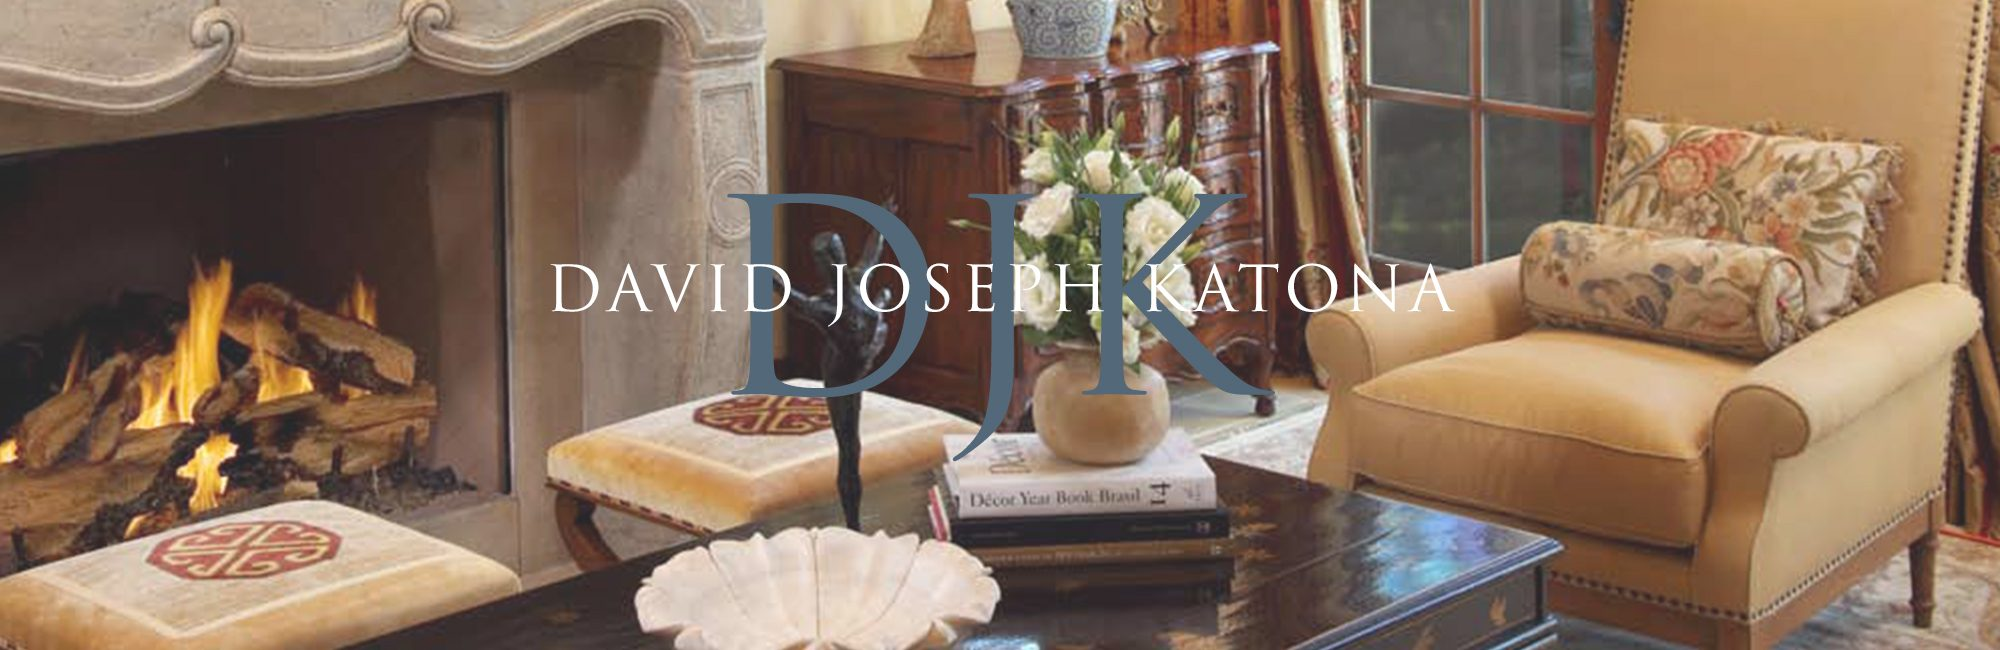 David Joseph Katona Interior Design Banner